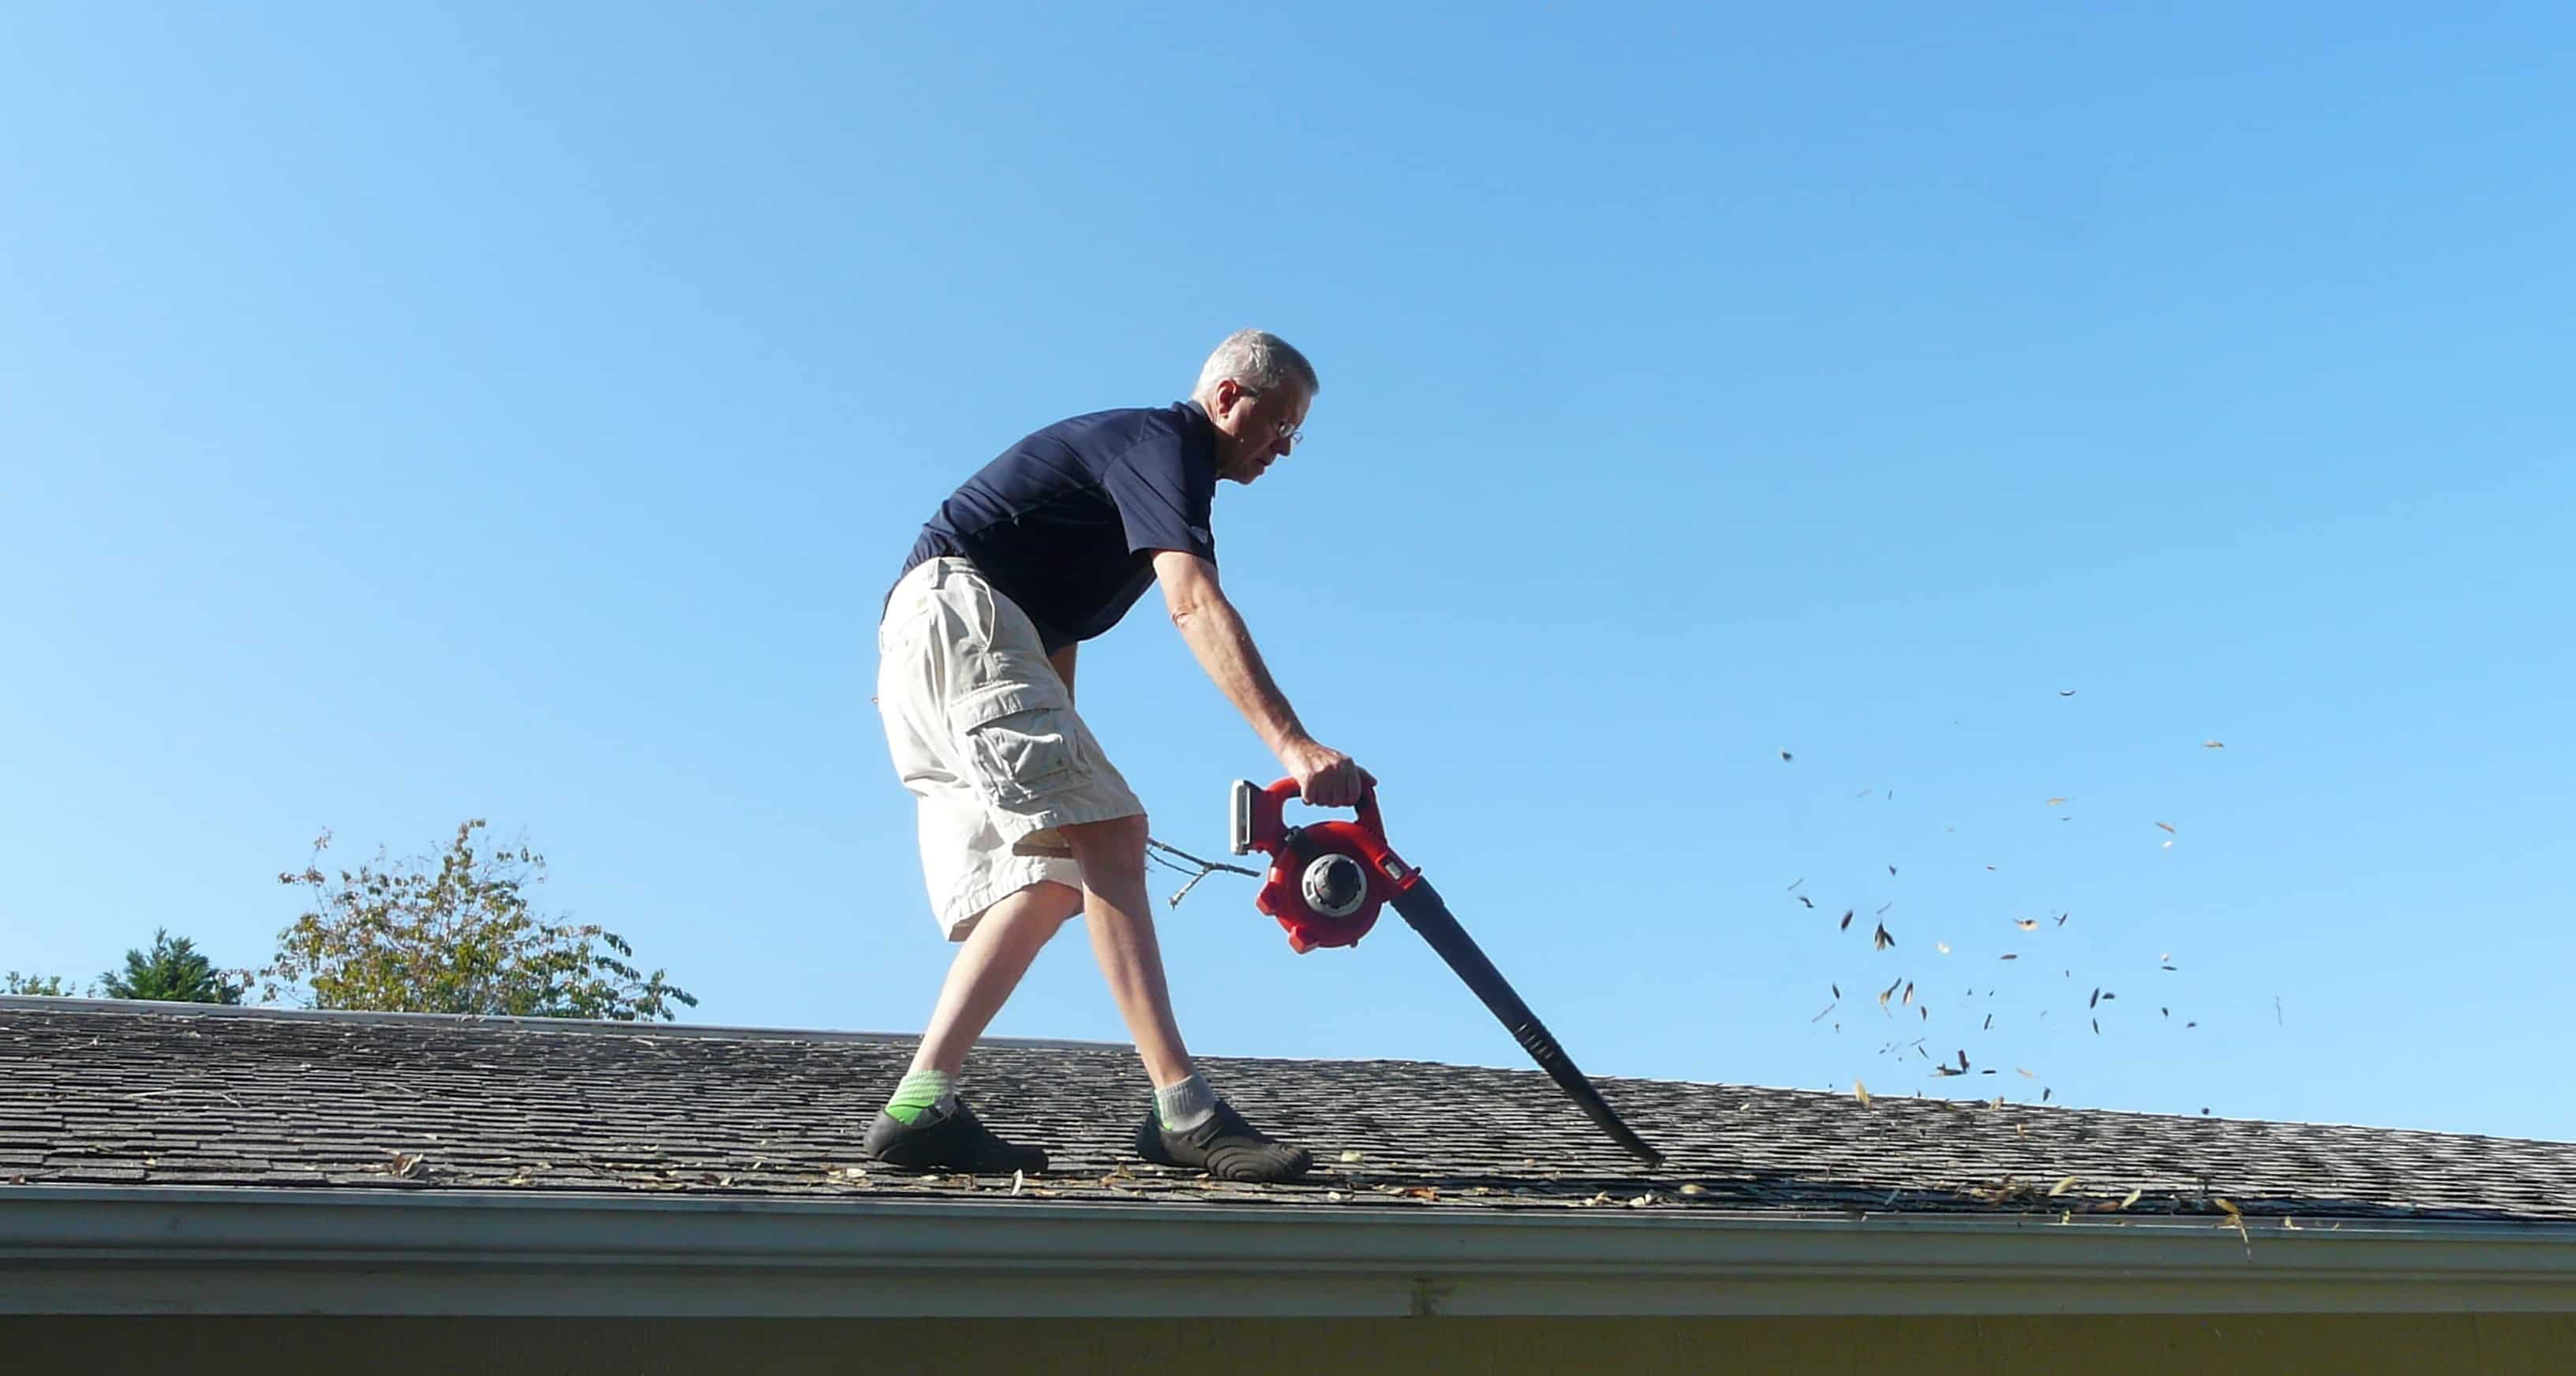 11 Different Types Of Gutter Cleaning Tools